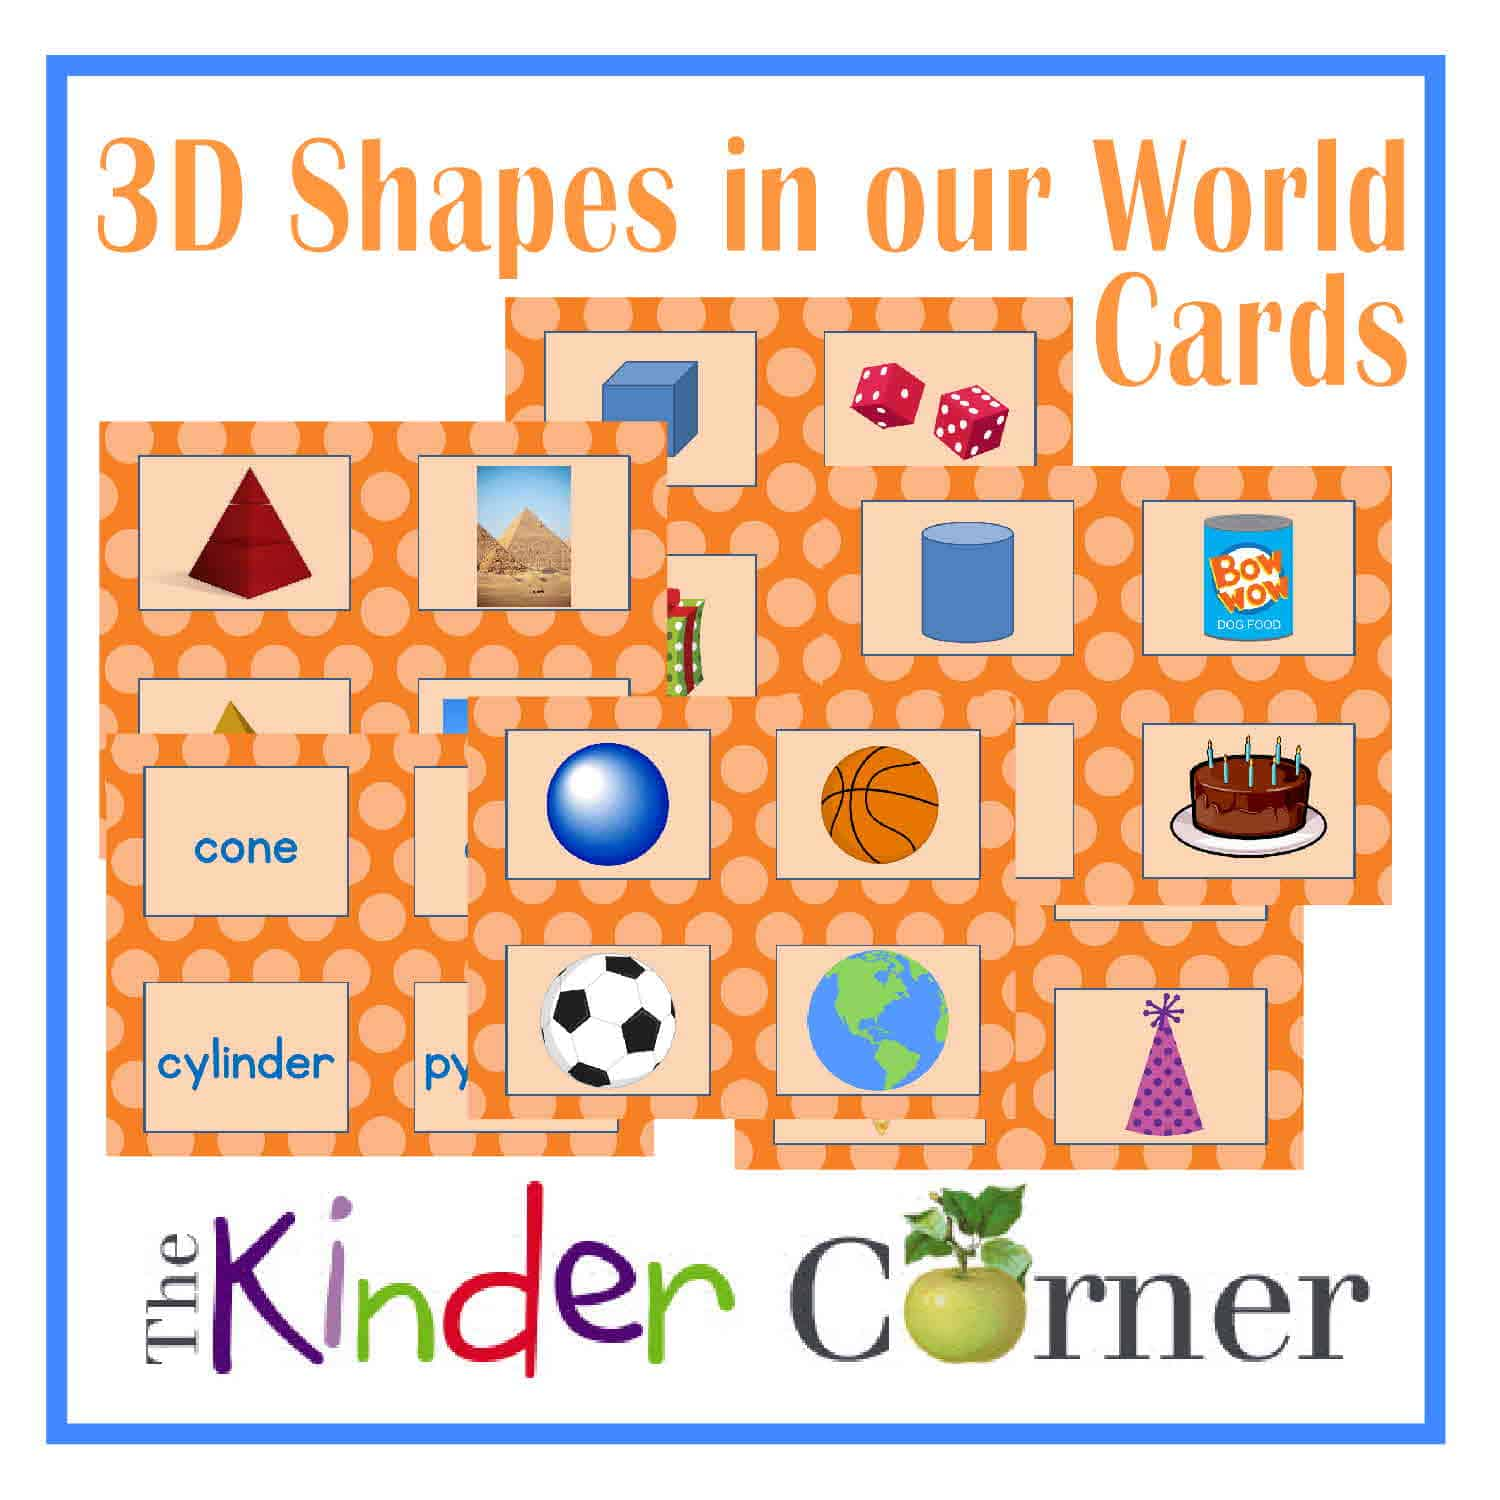 3D Shapes in our World Cards